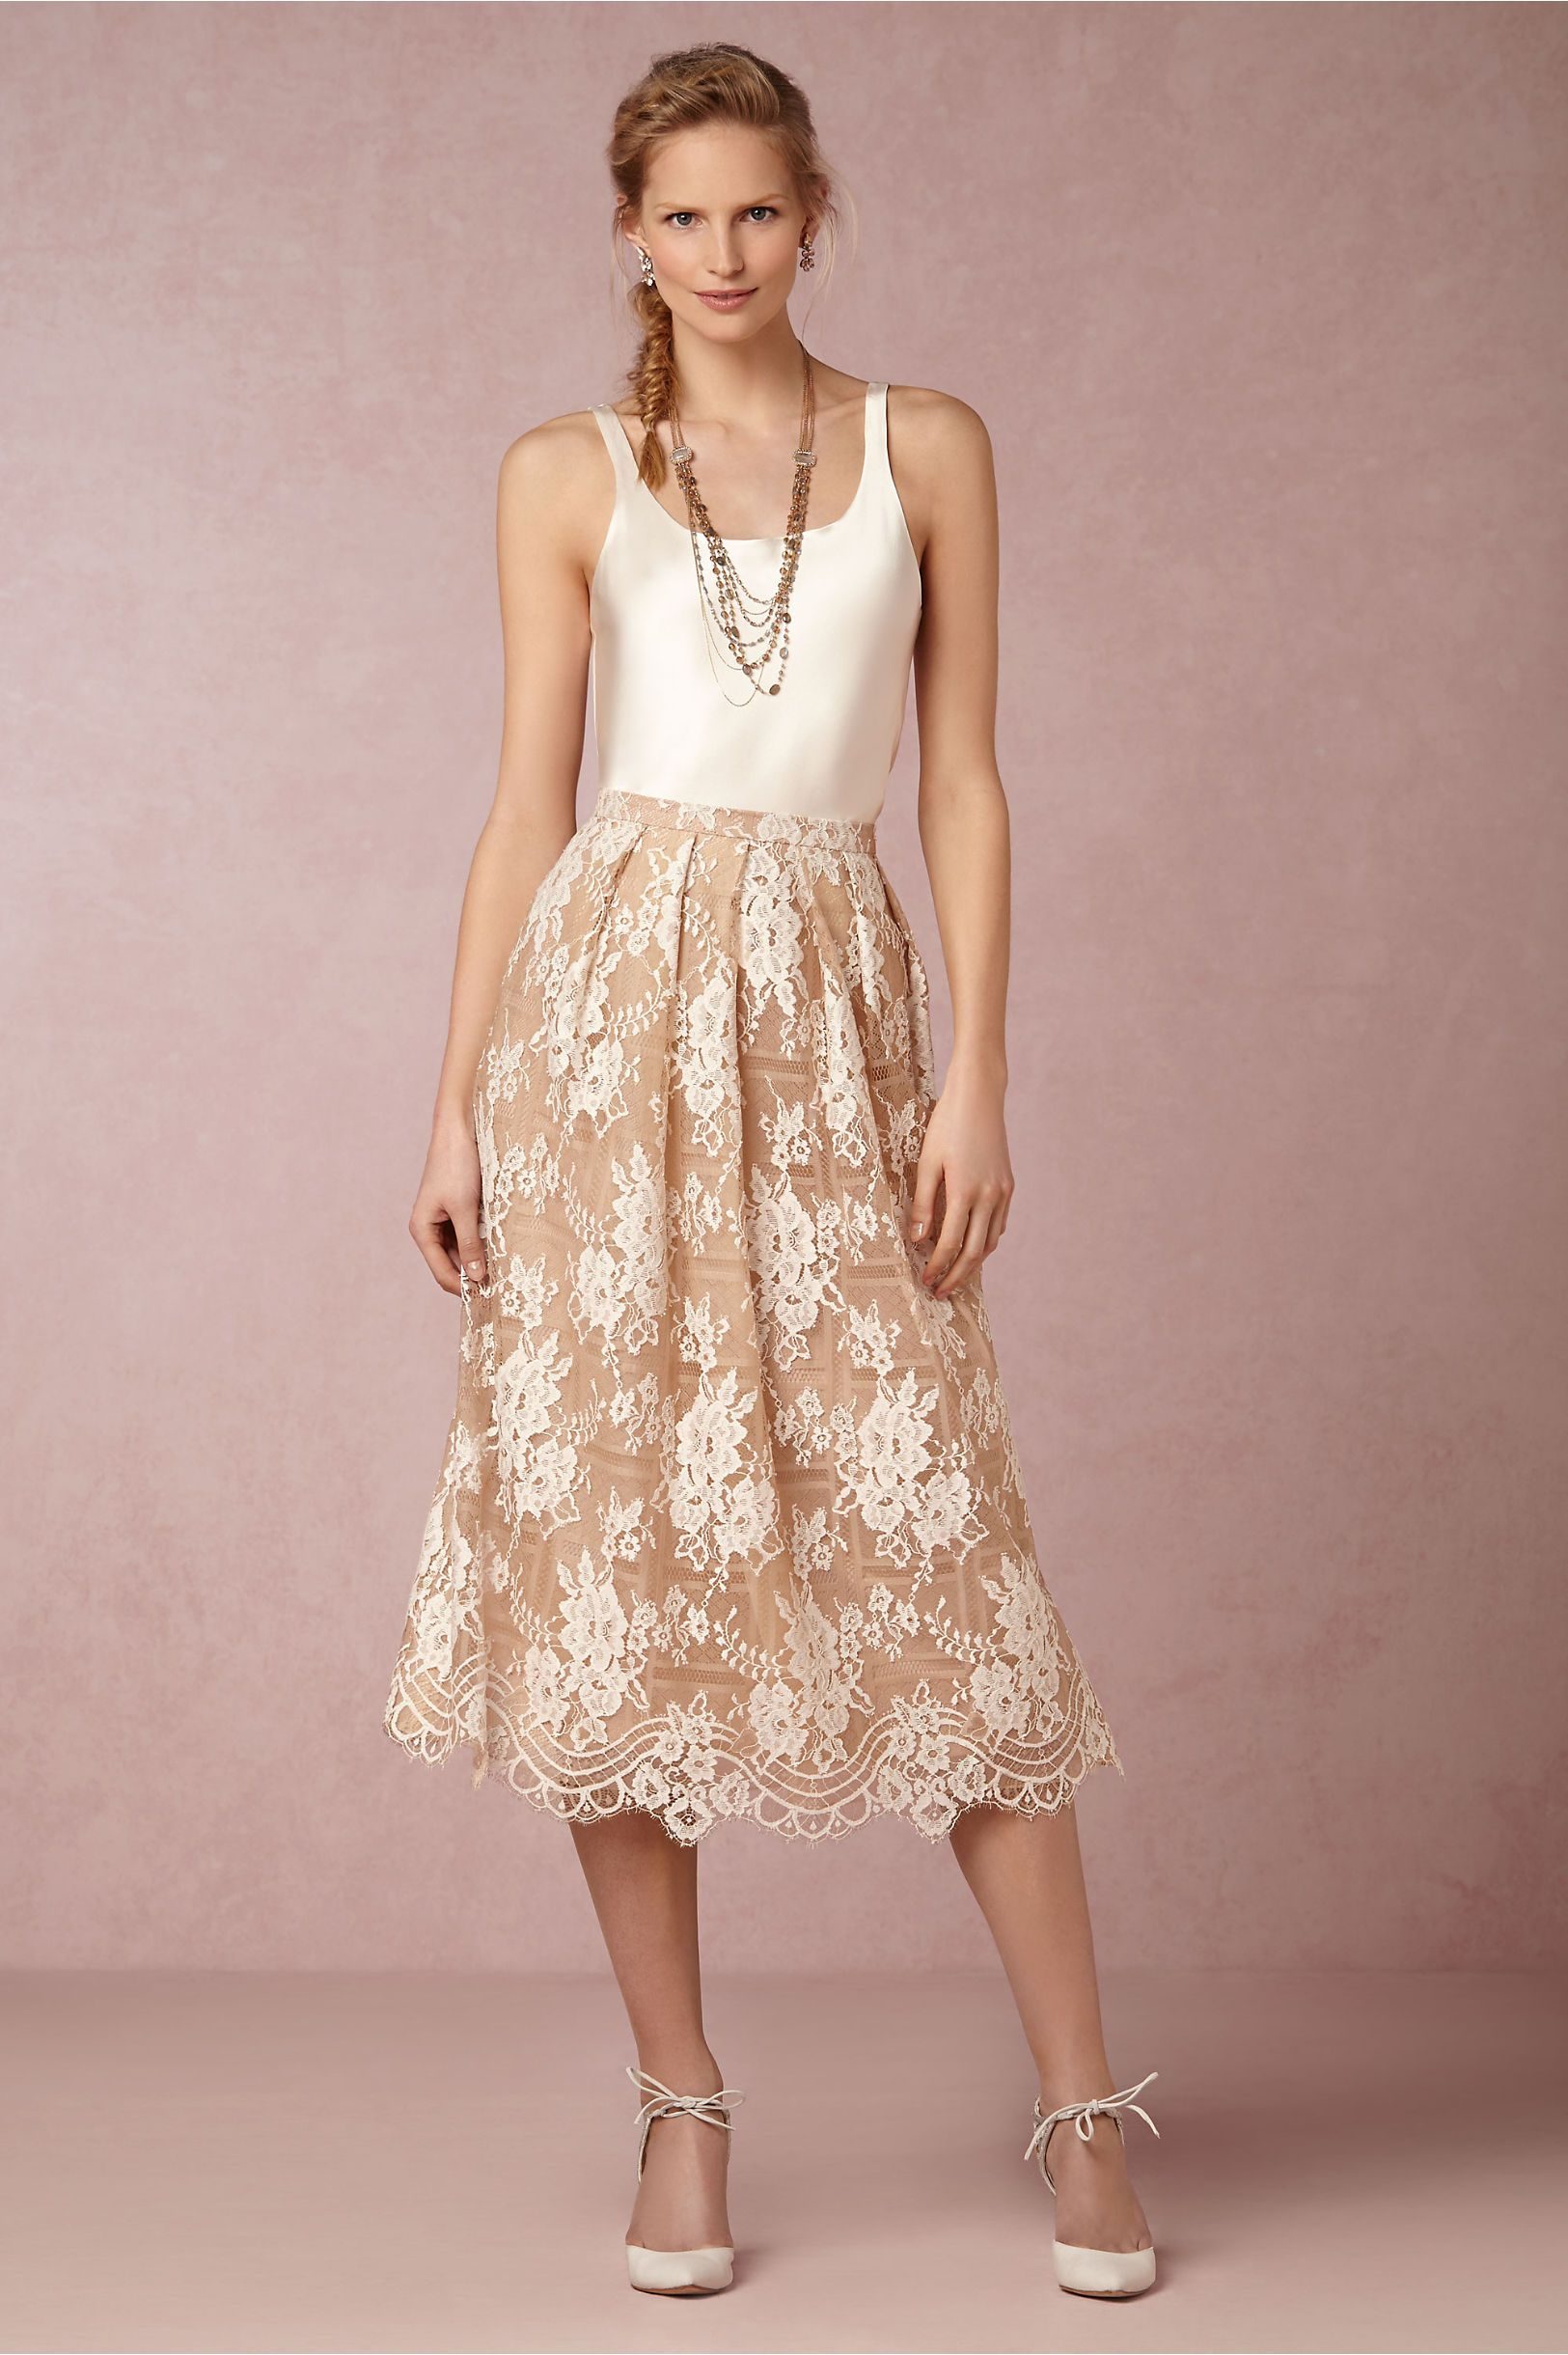 Kennedy skirt and perpetuity camisole in new at bhldn dress up